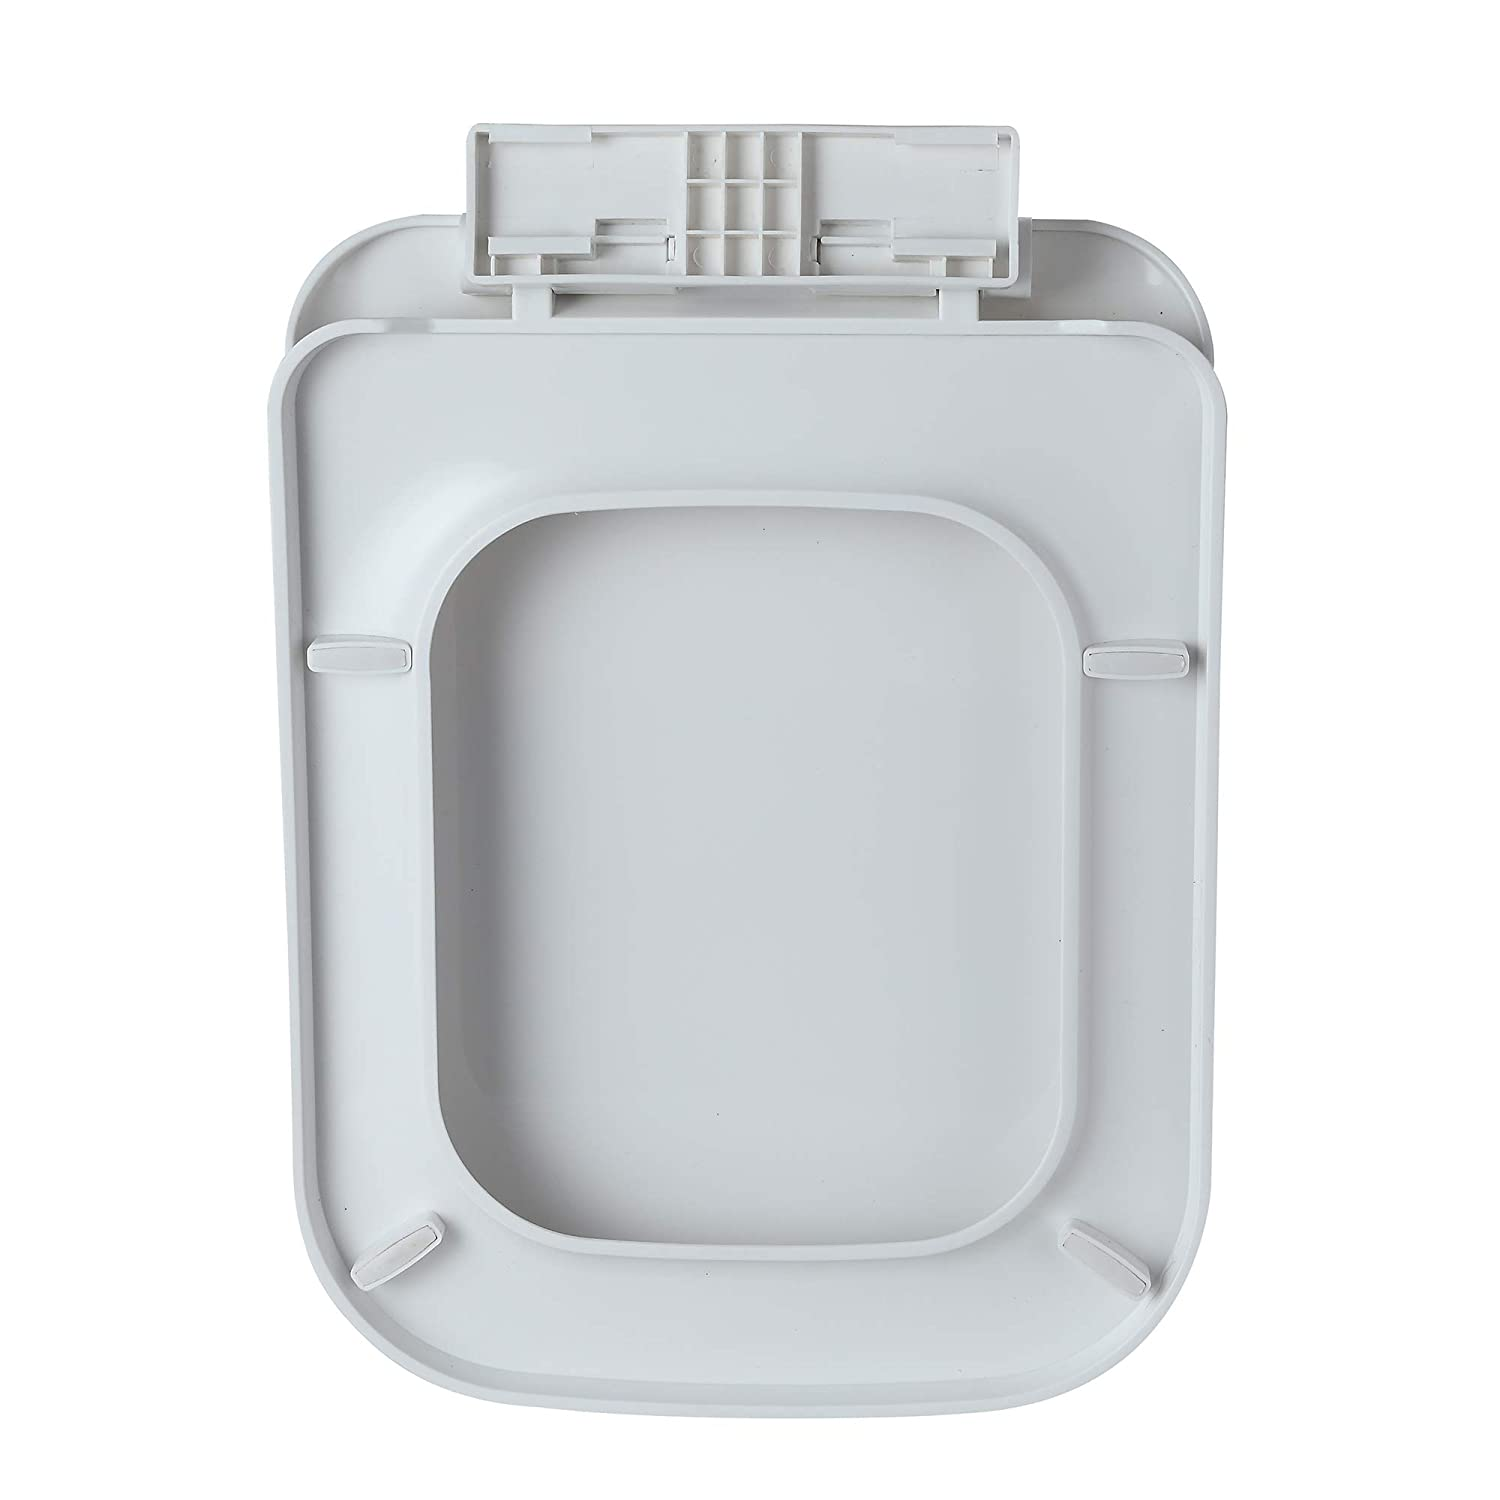 Eridanus 43.3 * 33.5 * 5cm Toilet Seat with Soft Close Hinges Made from Quality Polypropylene Series Flynn-01